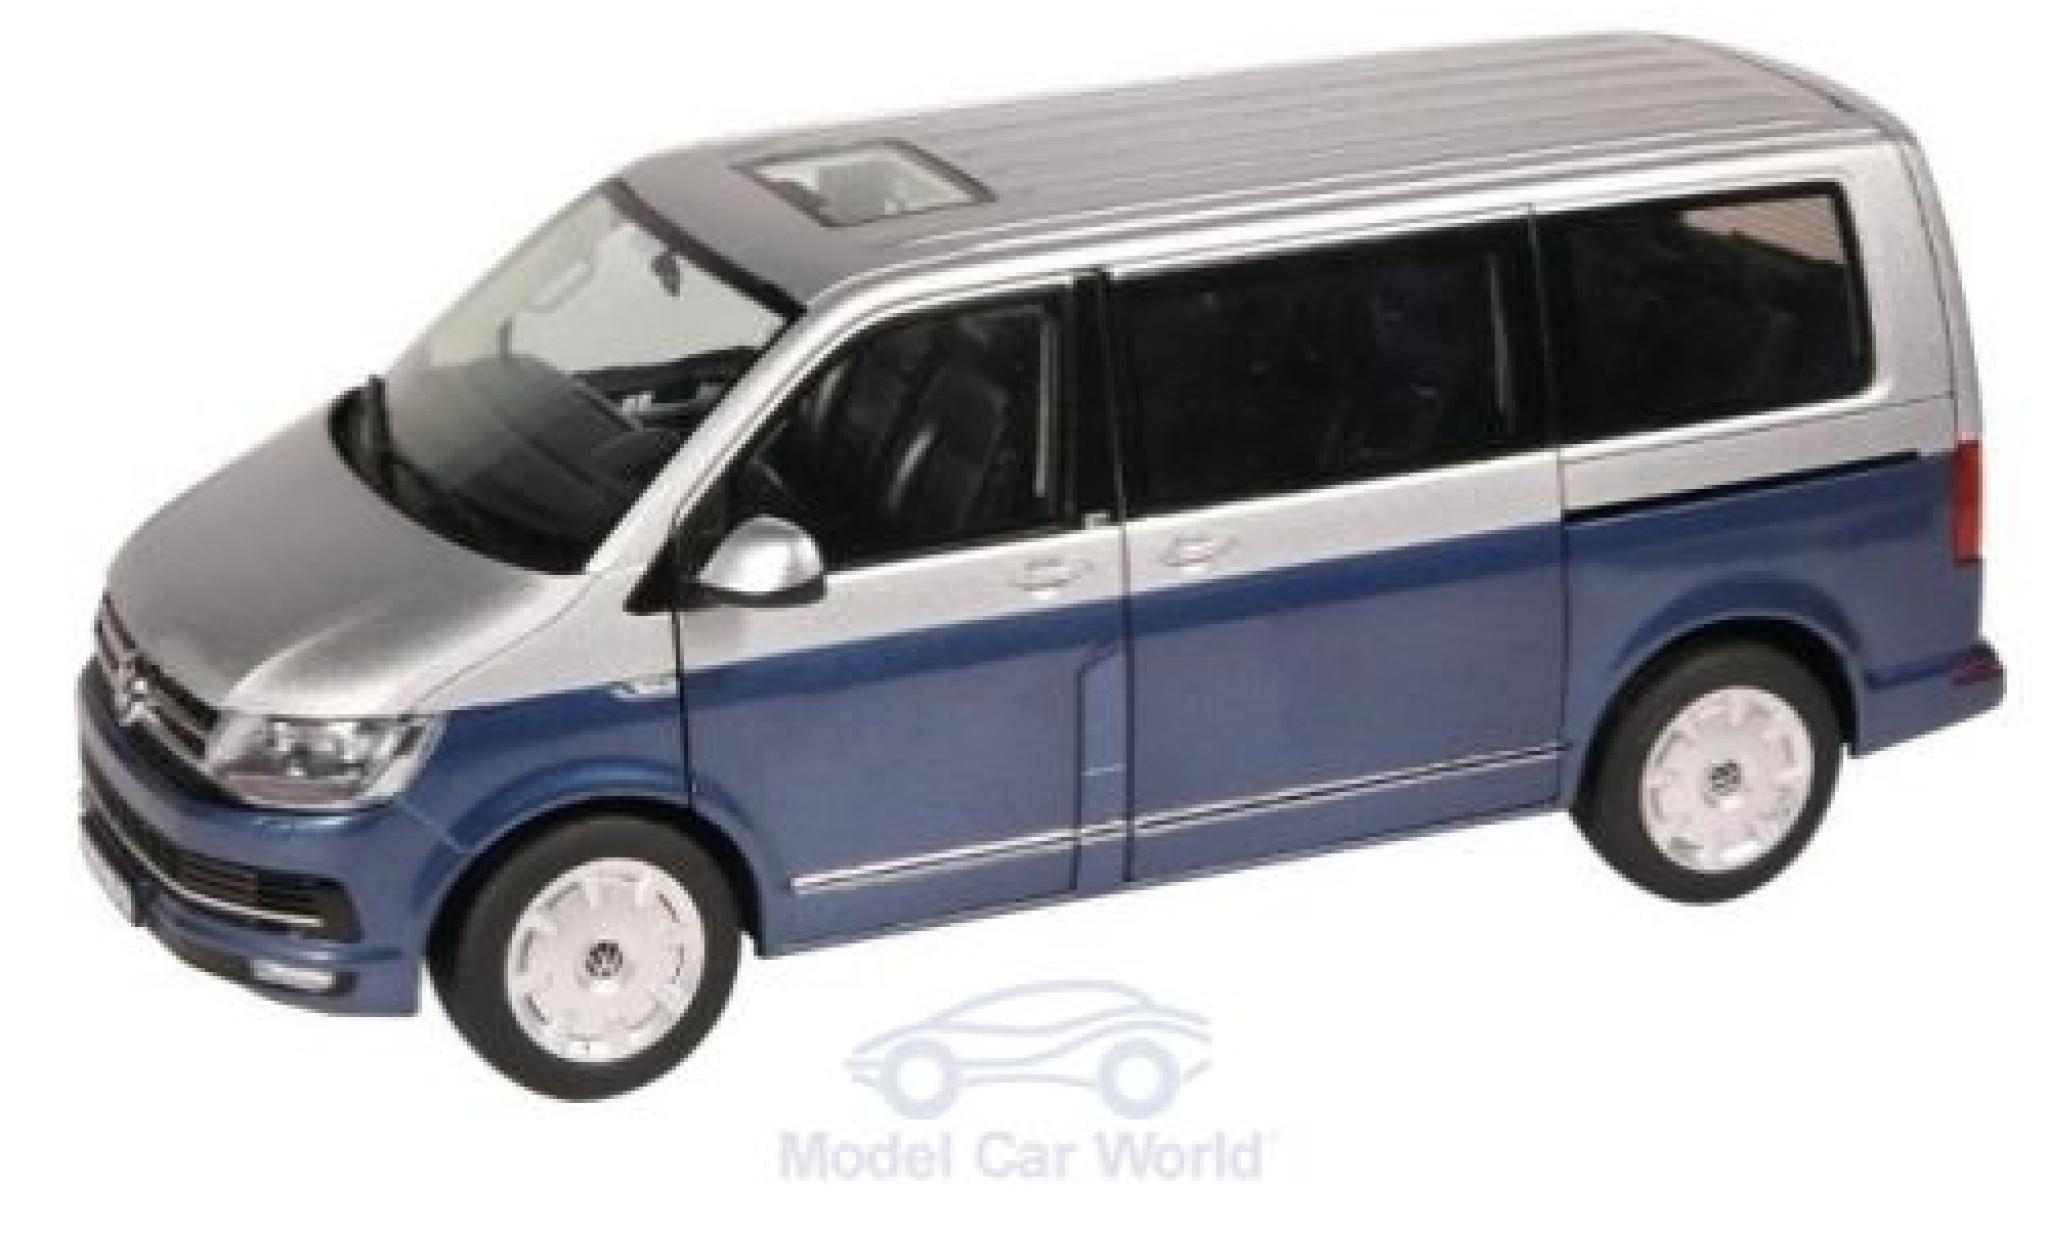 VW T6 Bus Multivan Edition 30 rot Modellauto 1:18 NZG